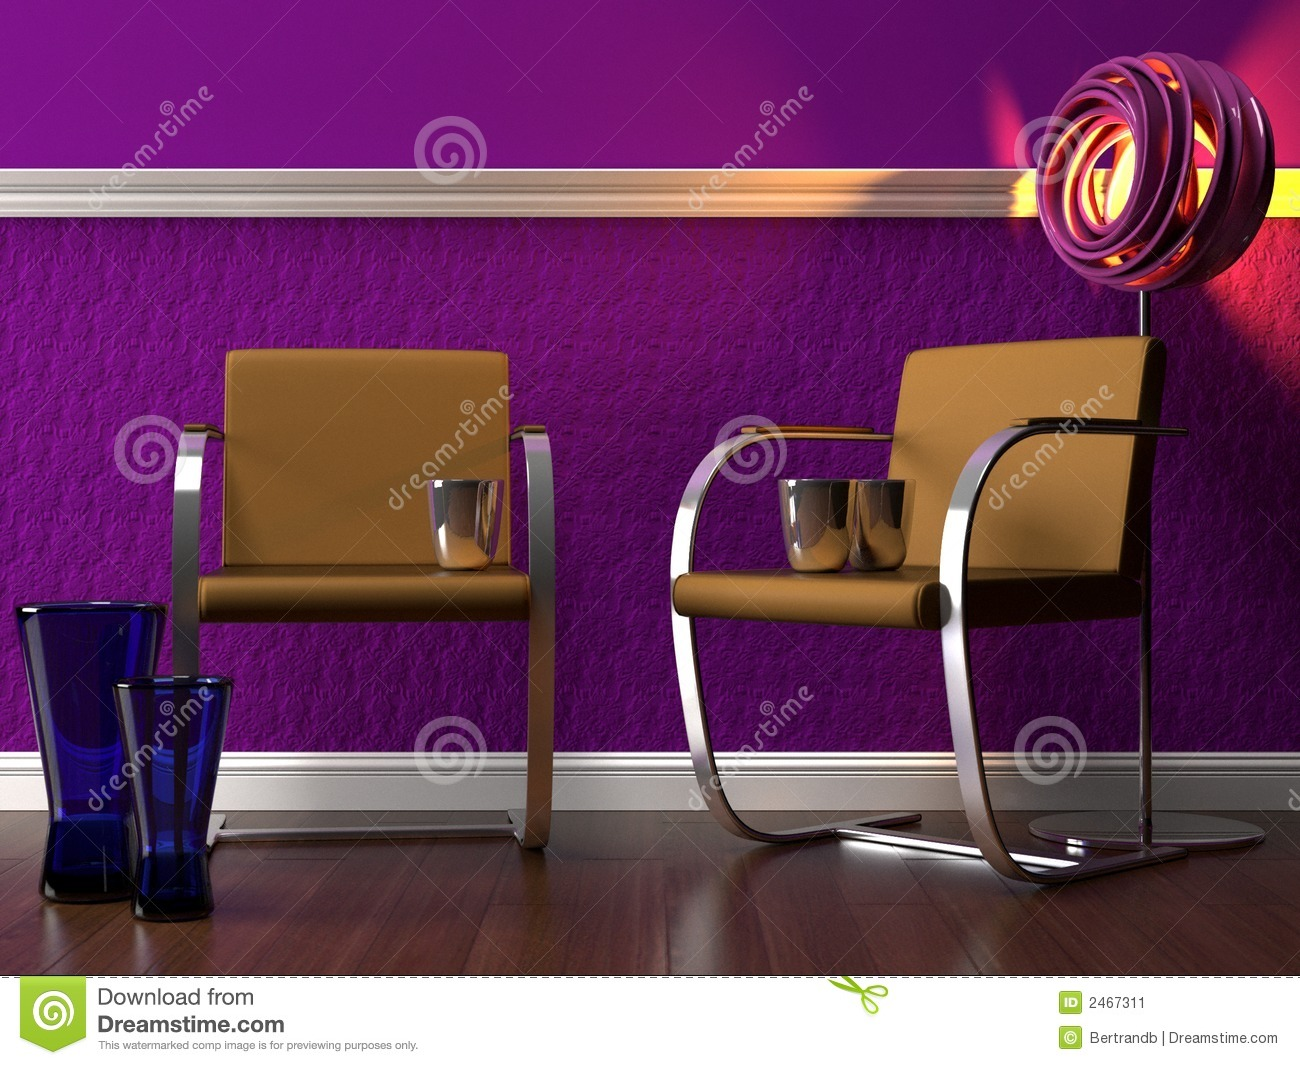 Elegant purple interior